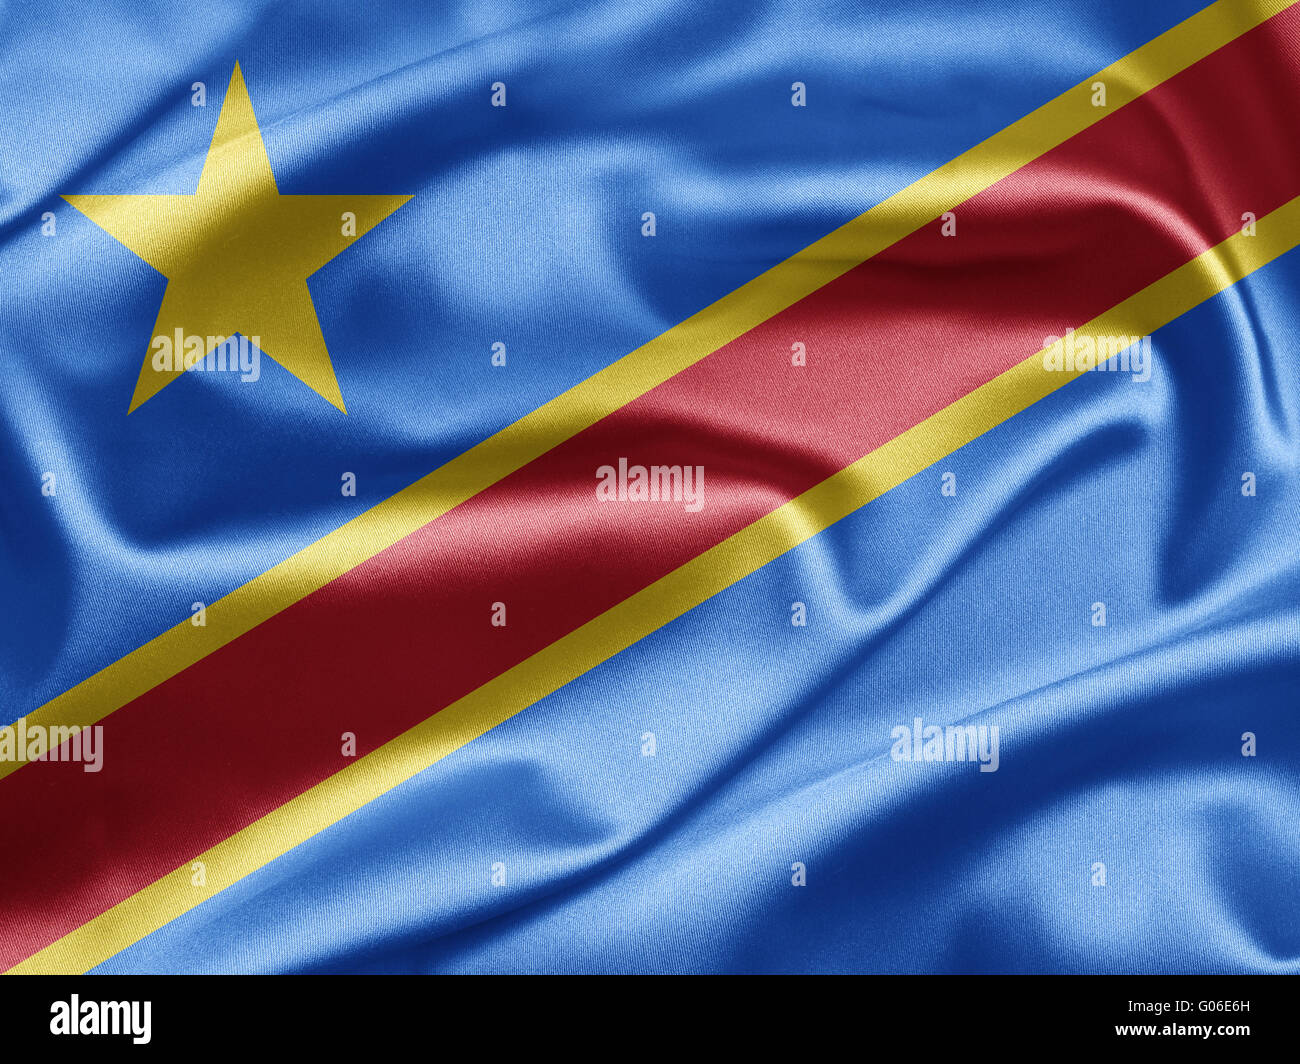 Democratic Republic of the Congo - Stock Image